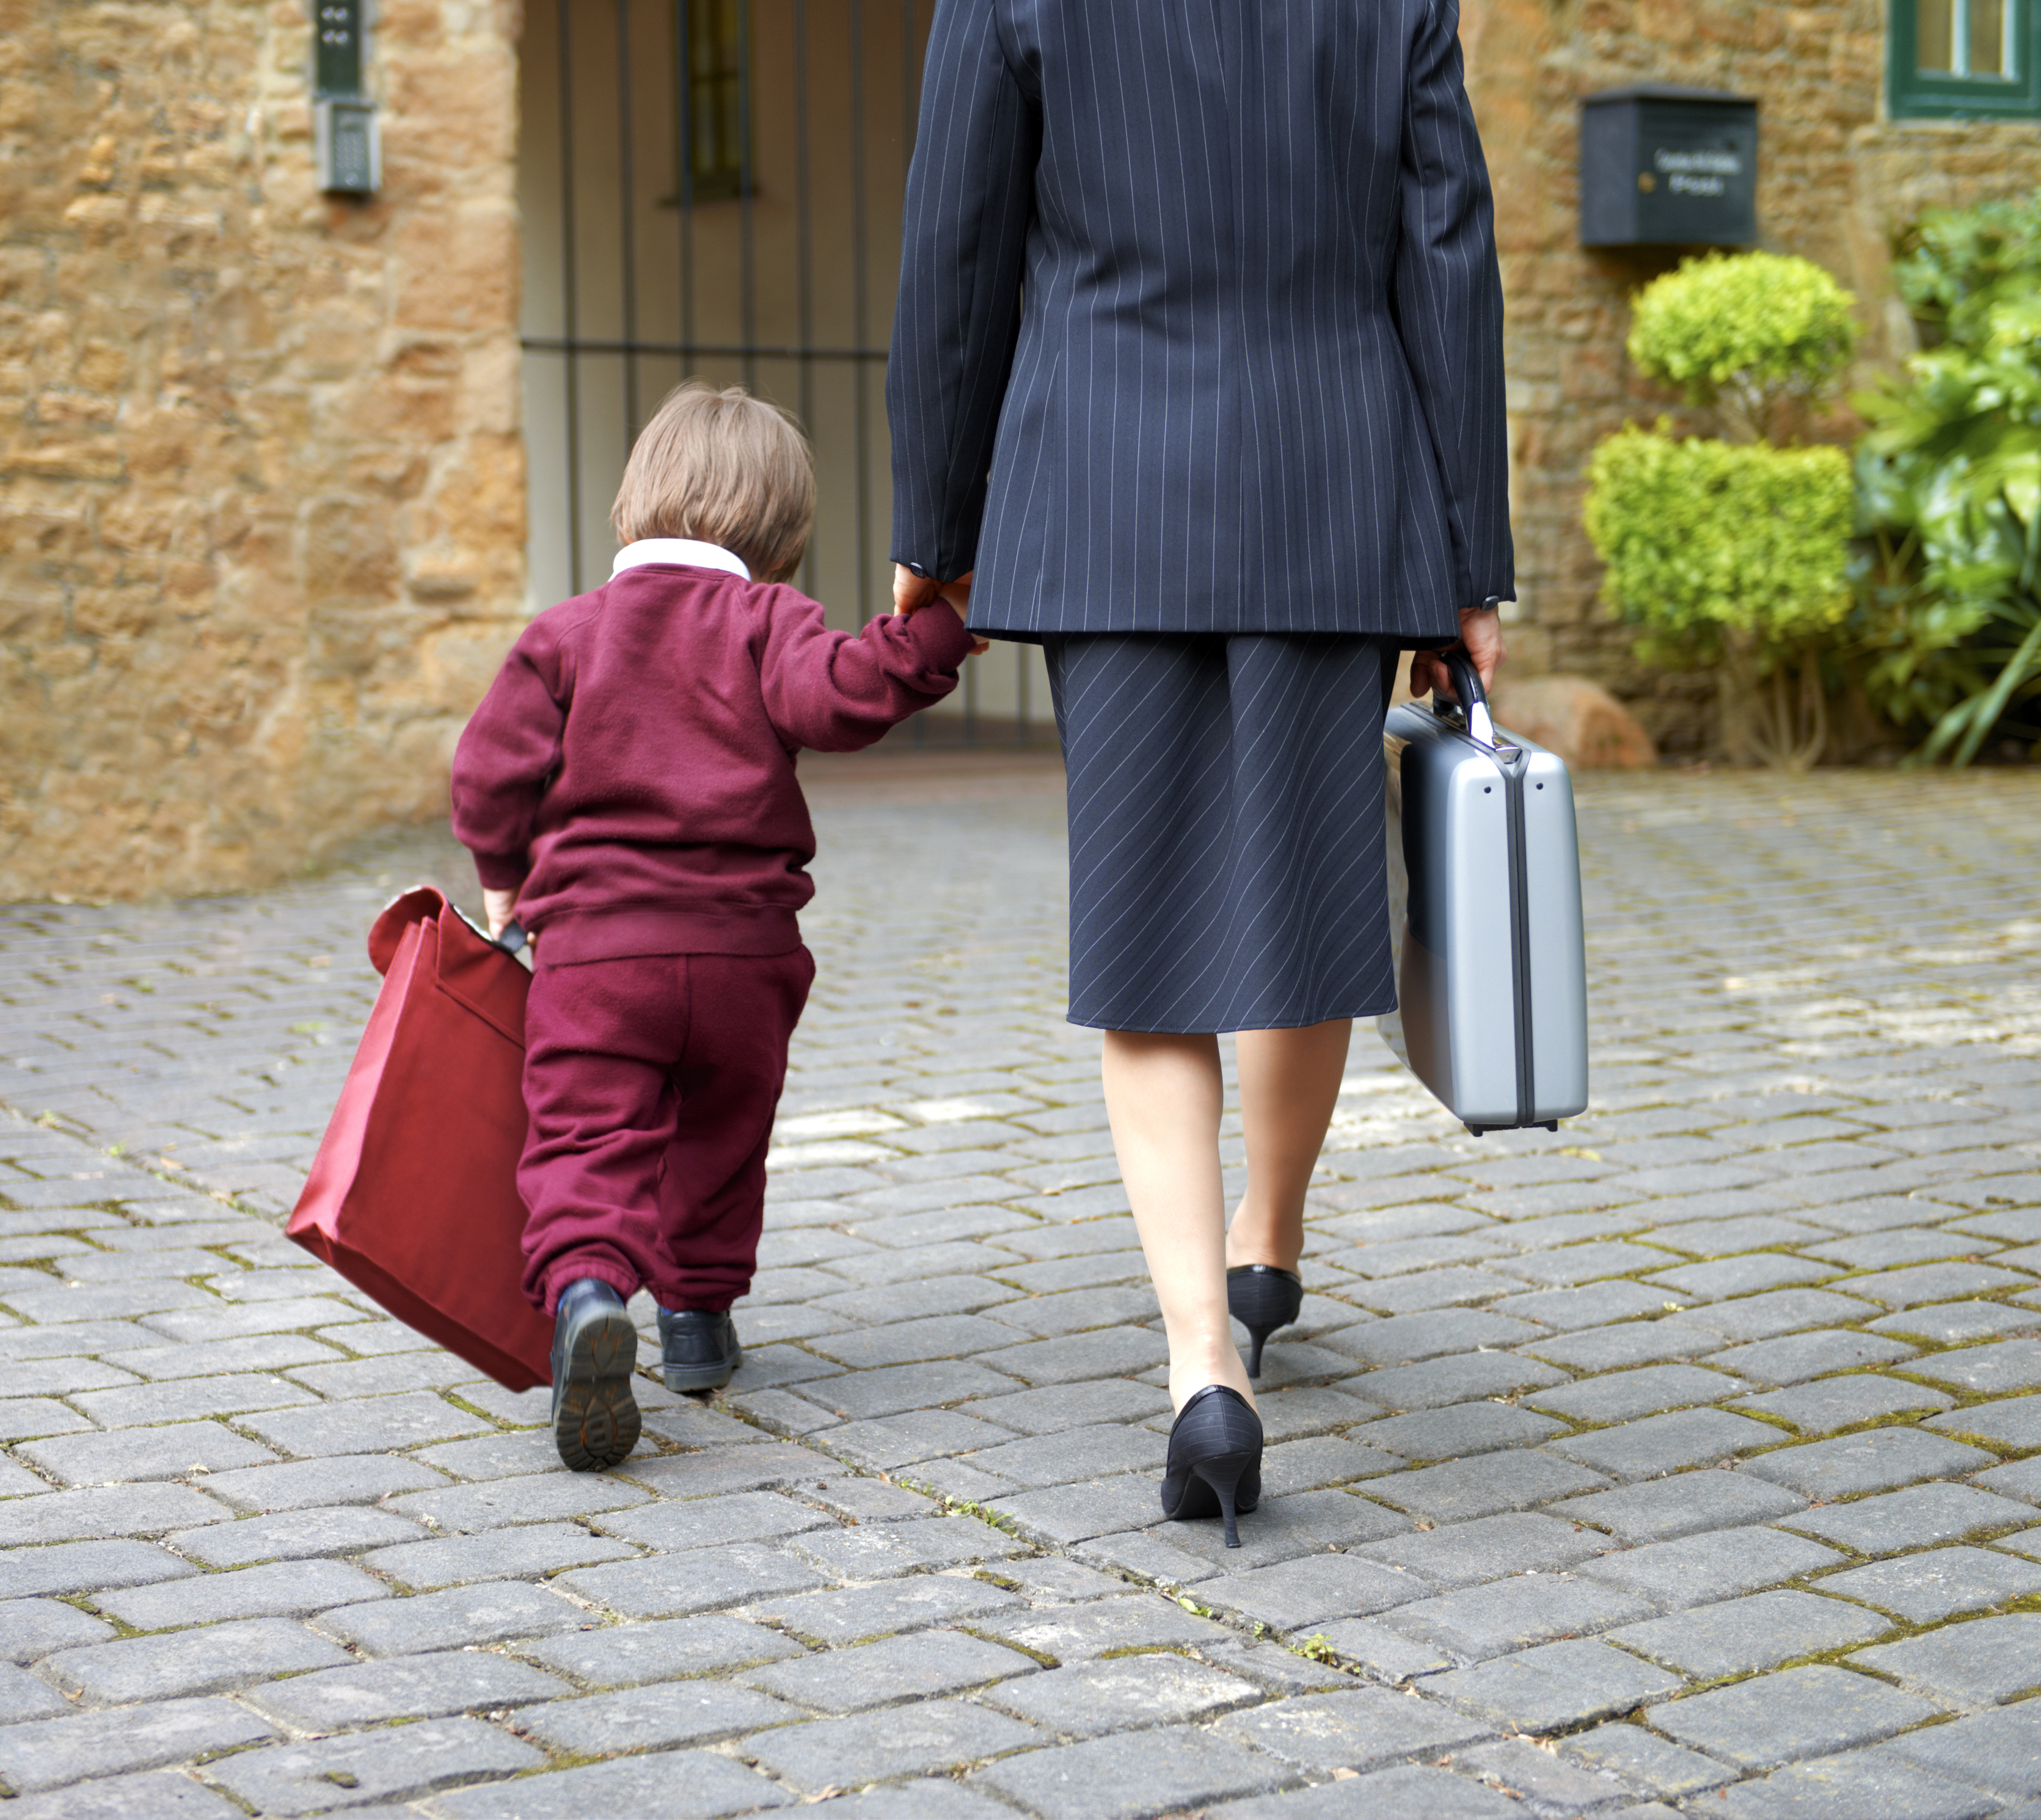 Single working mother taking child to school